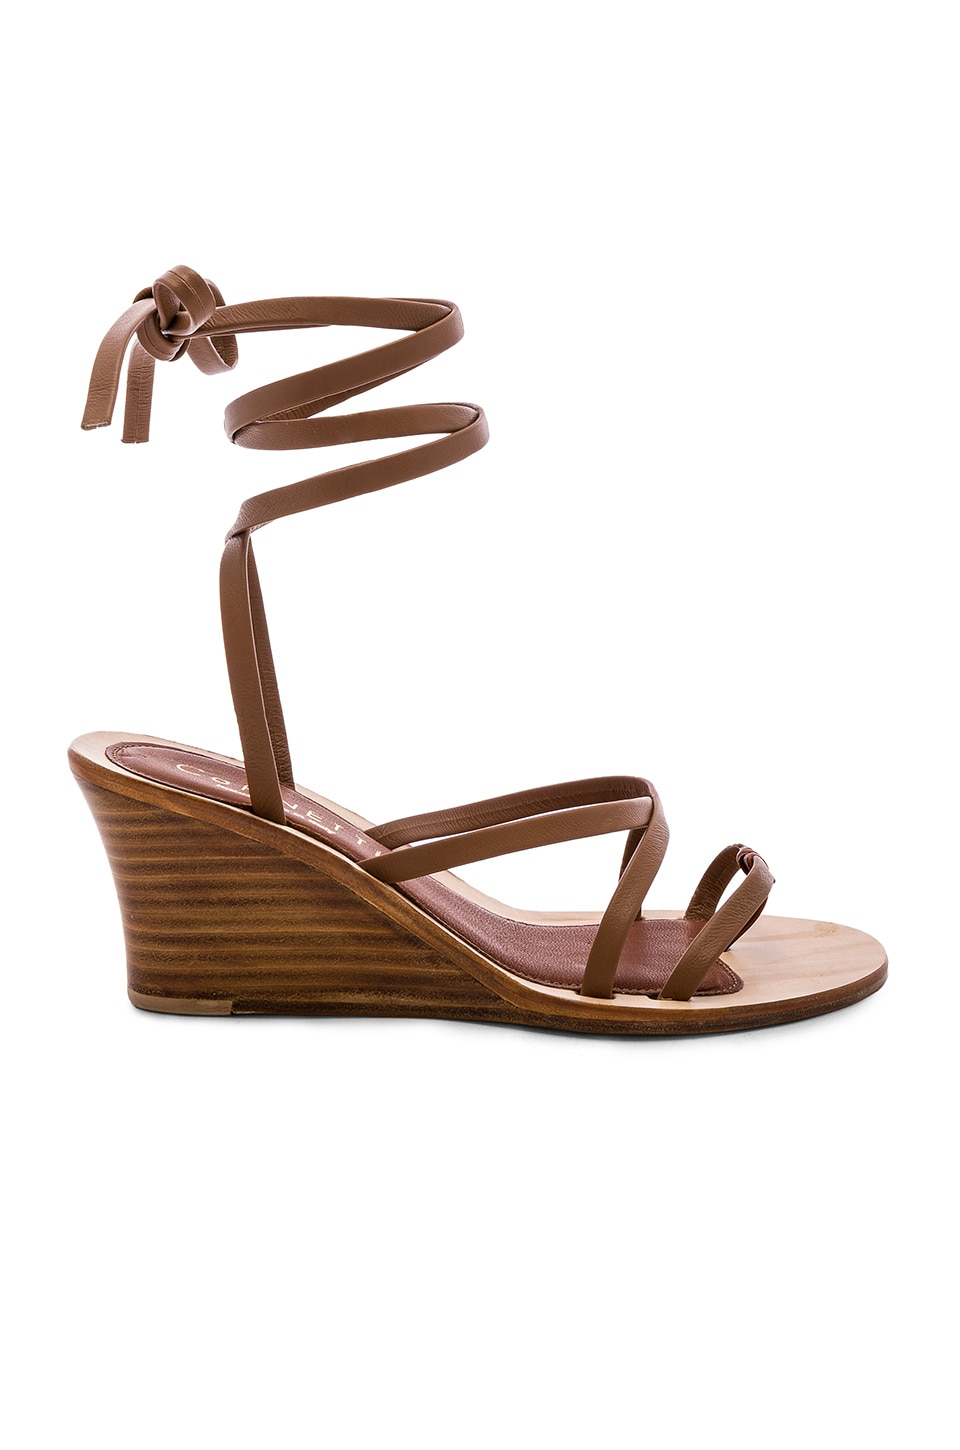 CoRNETTI Caminia Wedge Sandal in Brown Calfskin